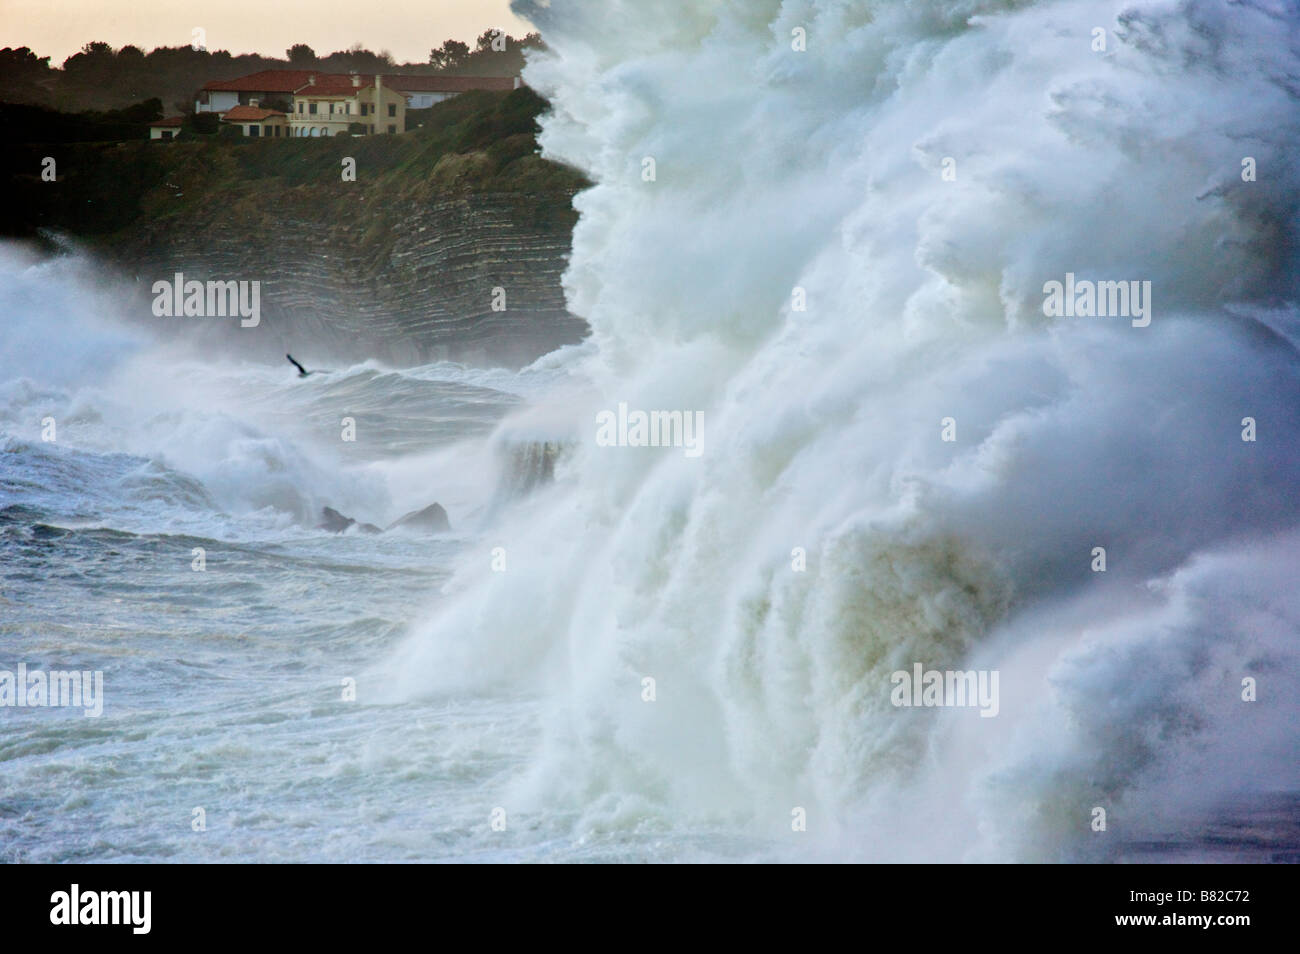 Klaus storm waves breaking on Soccoa dike Pays Basque France Stock Photo